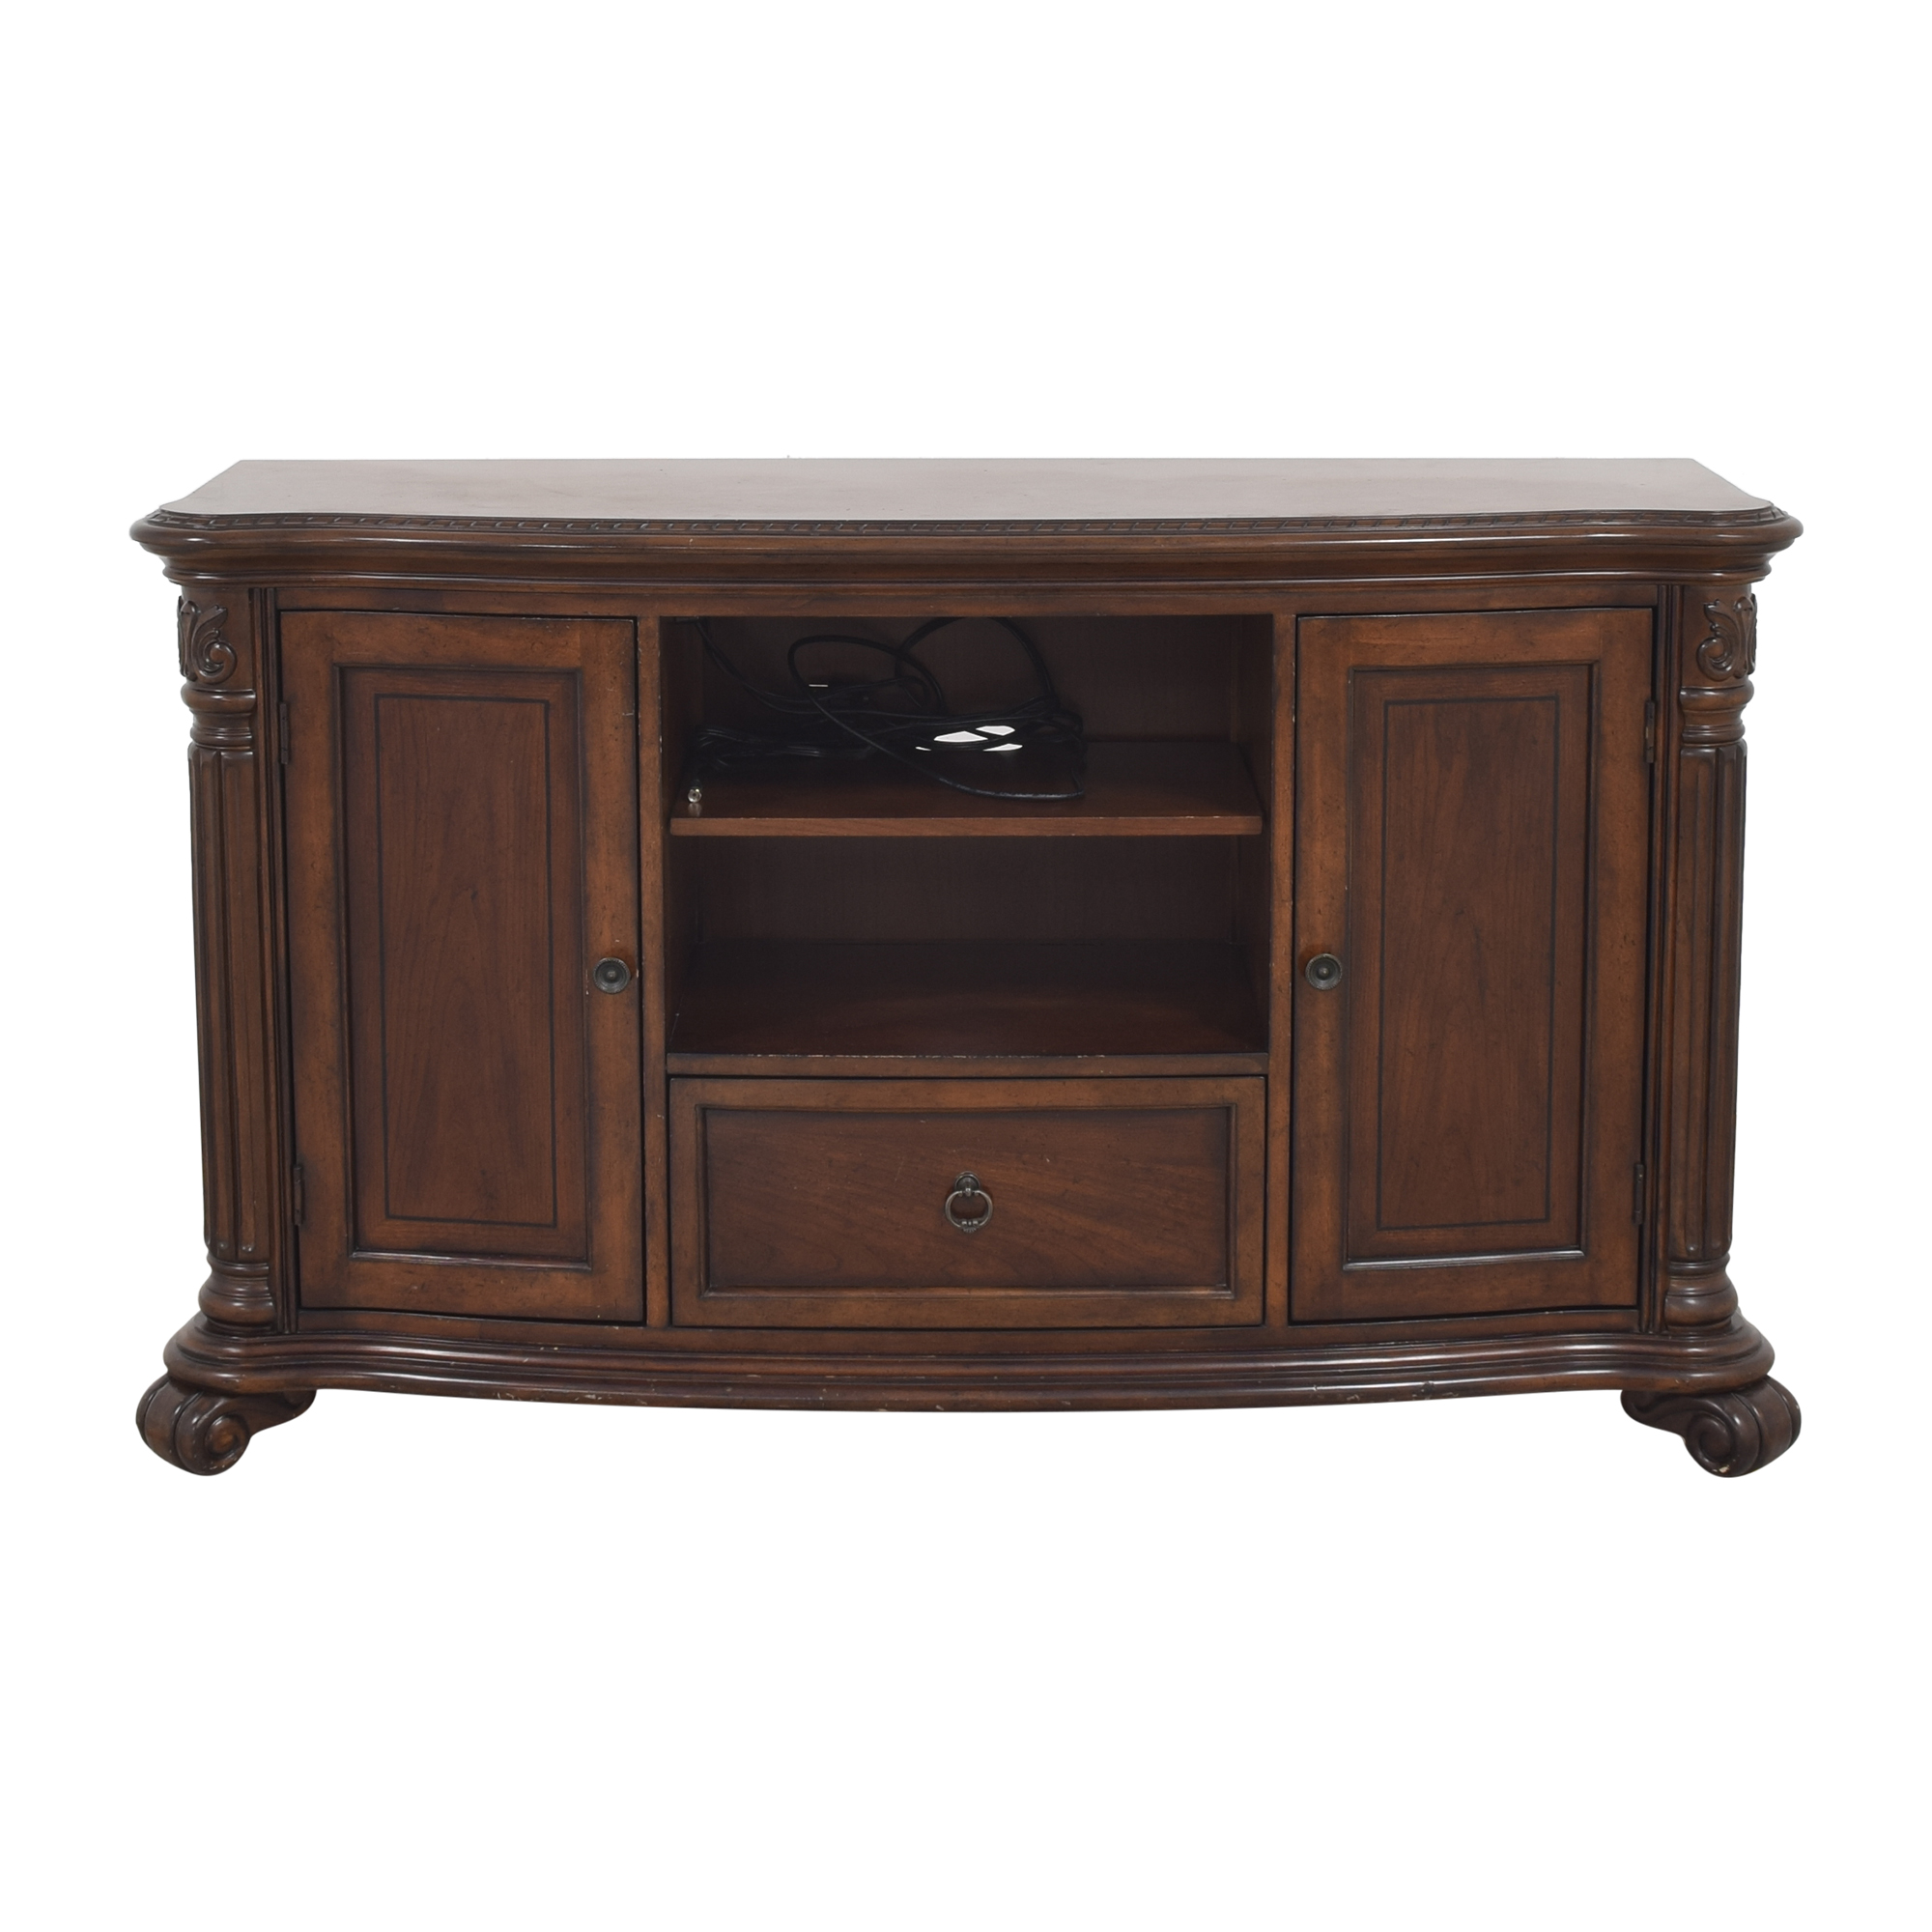 Raymour & Flanigan Raymour & Flanigan Media Console coupon